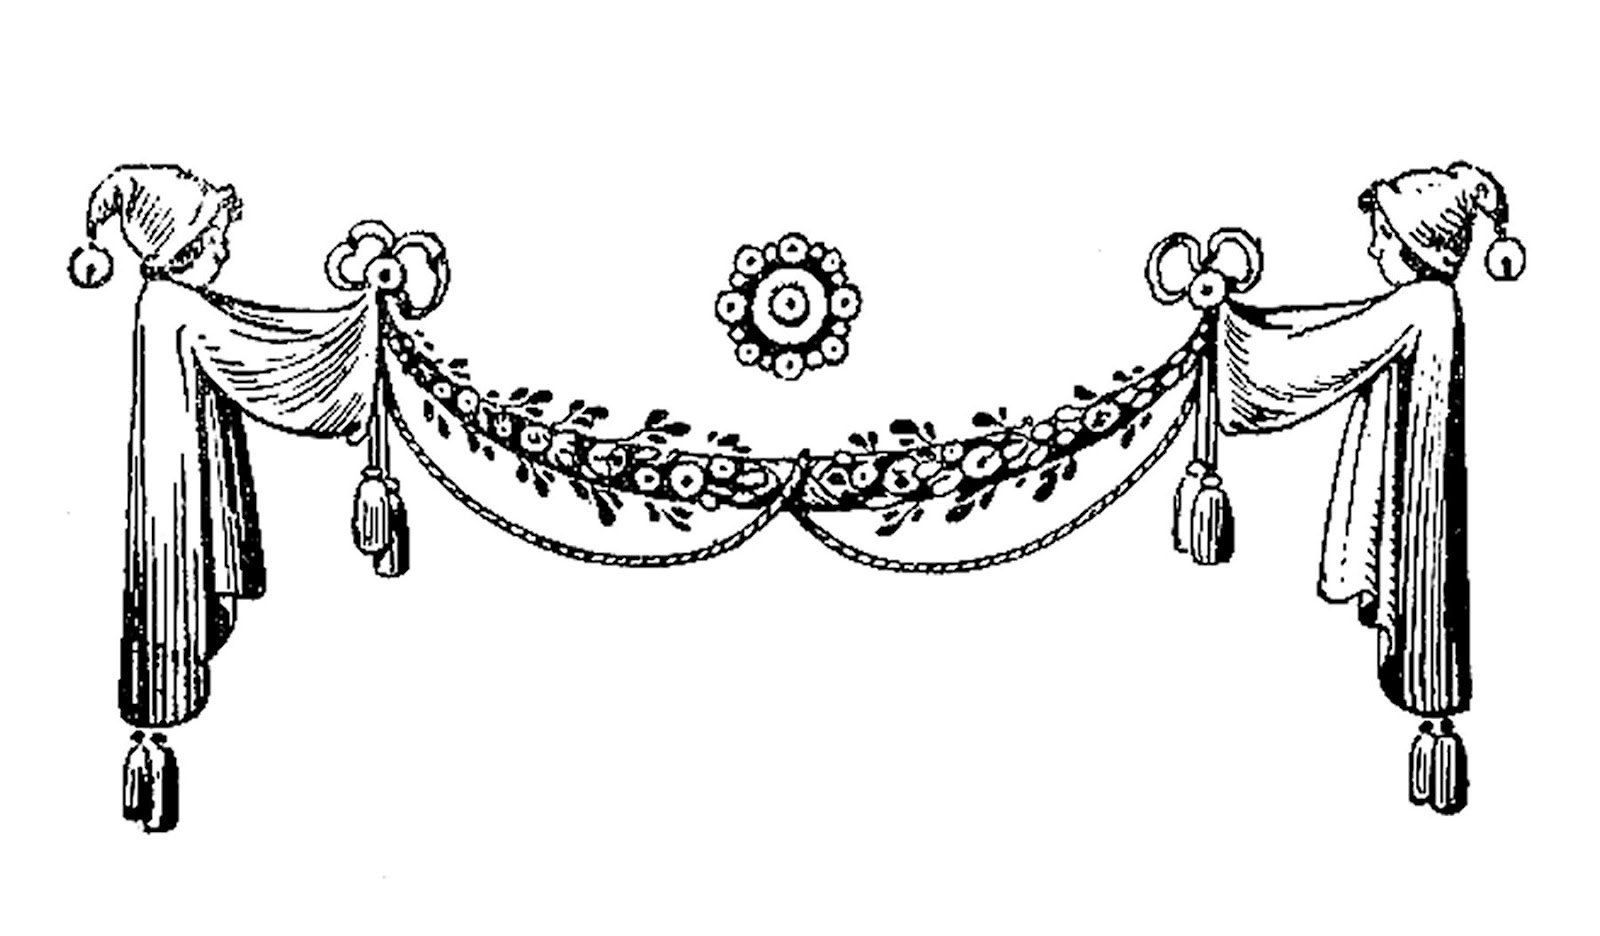 Vintage Graphic Design: Black And White Illustration Of Curtain Design